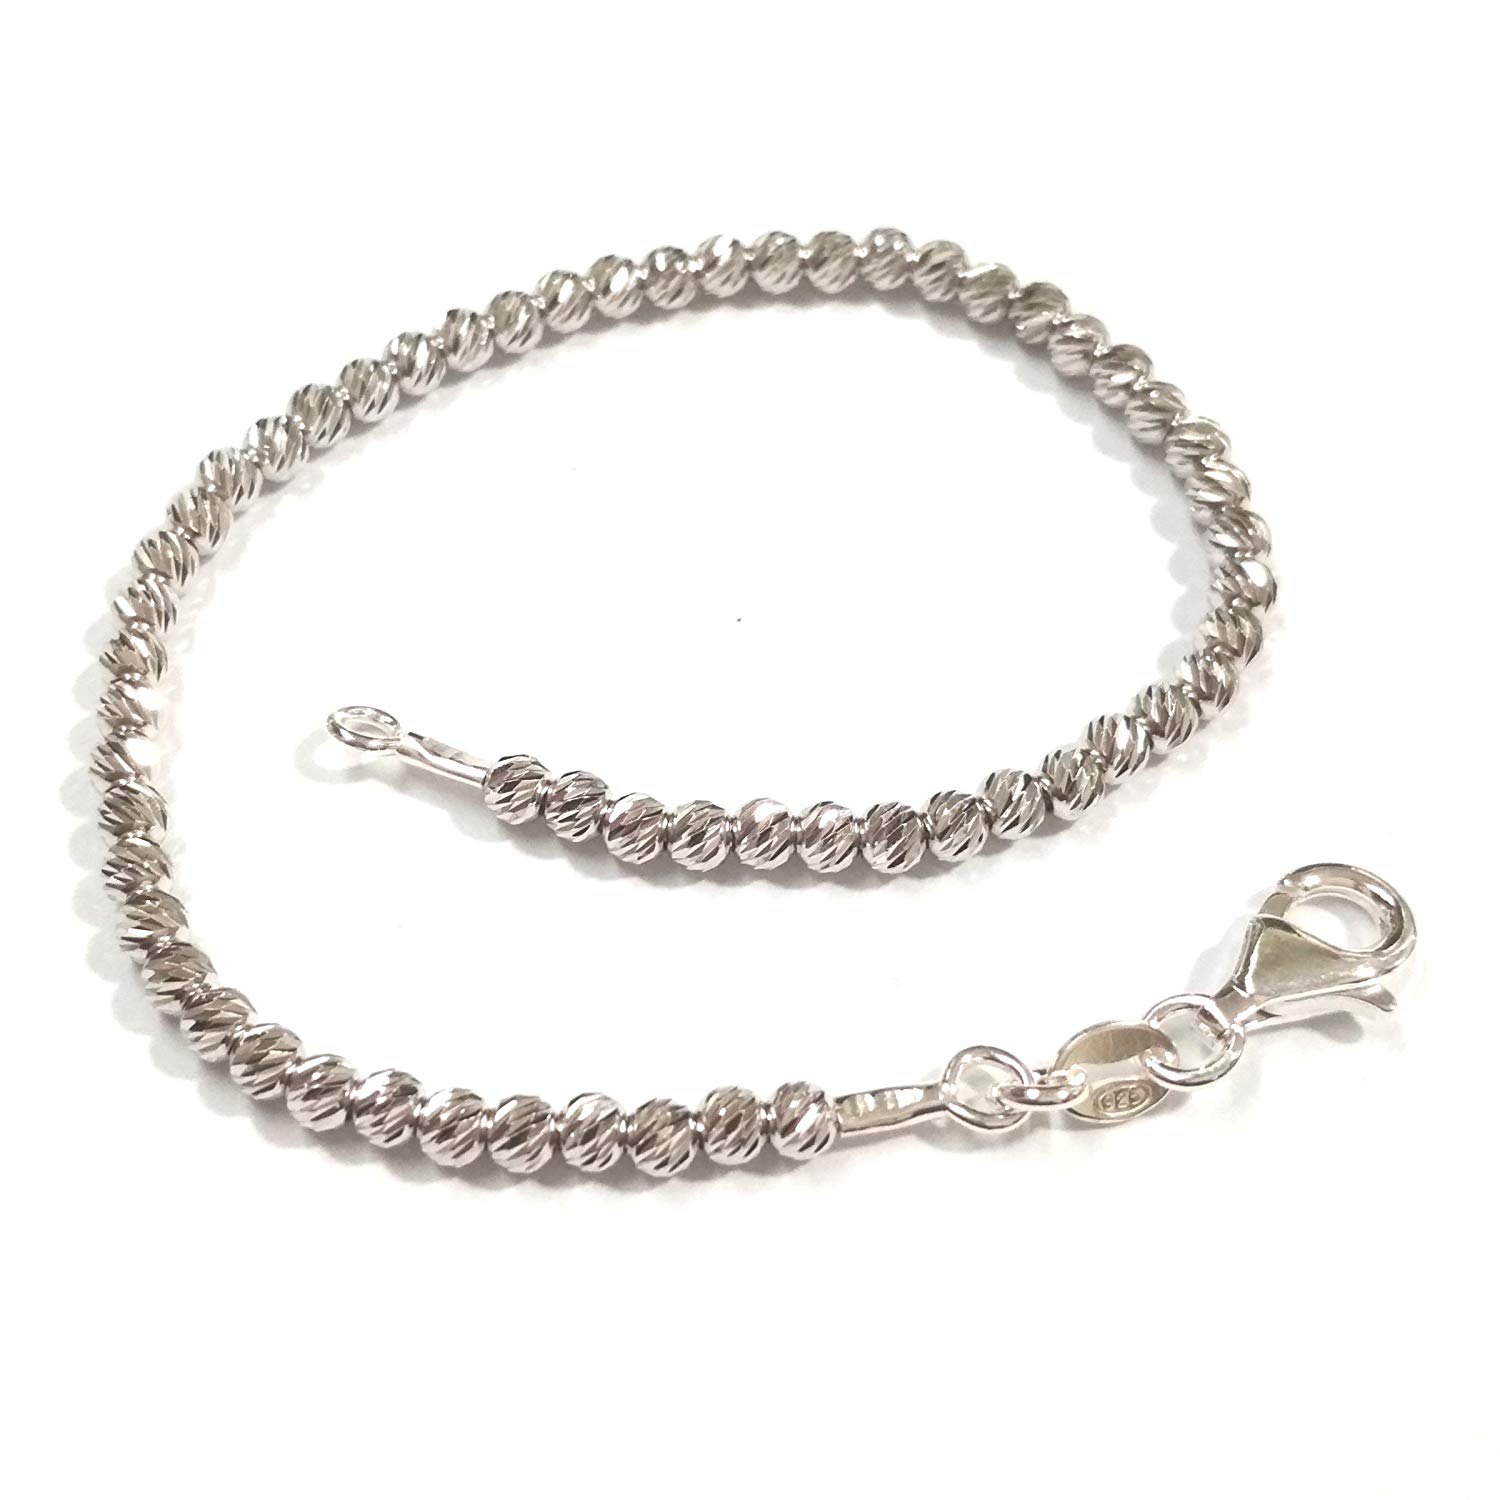 RHODIUM PLATED 925 Sterling Silver 3mm LASER CUT Diamond Cut BEADS Beaded BRACELET Made toYour Size